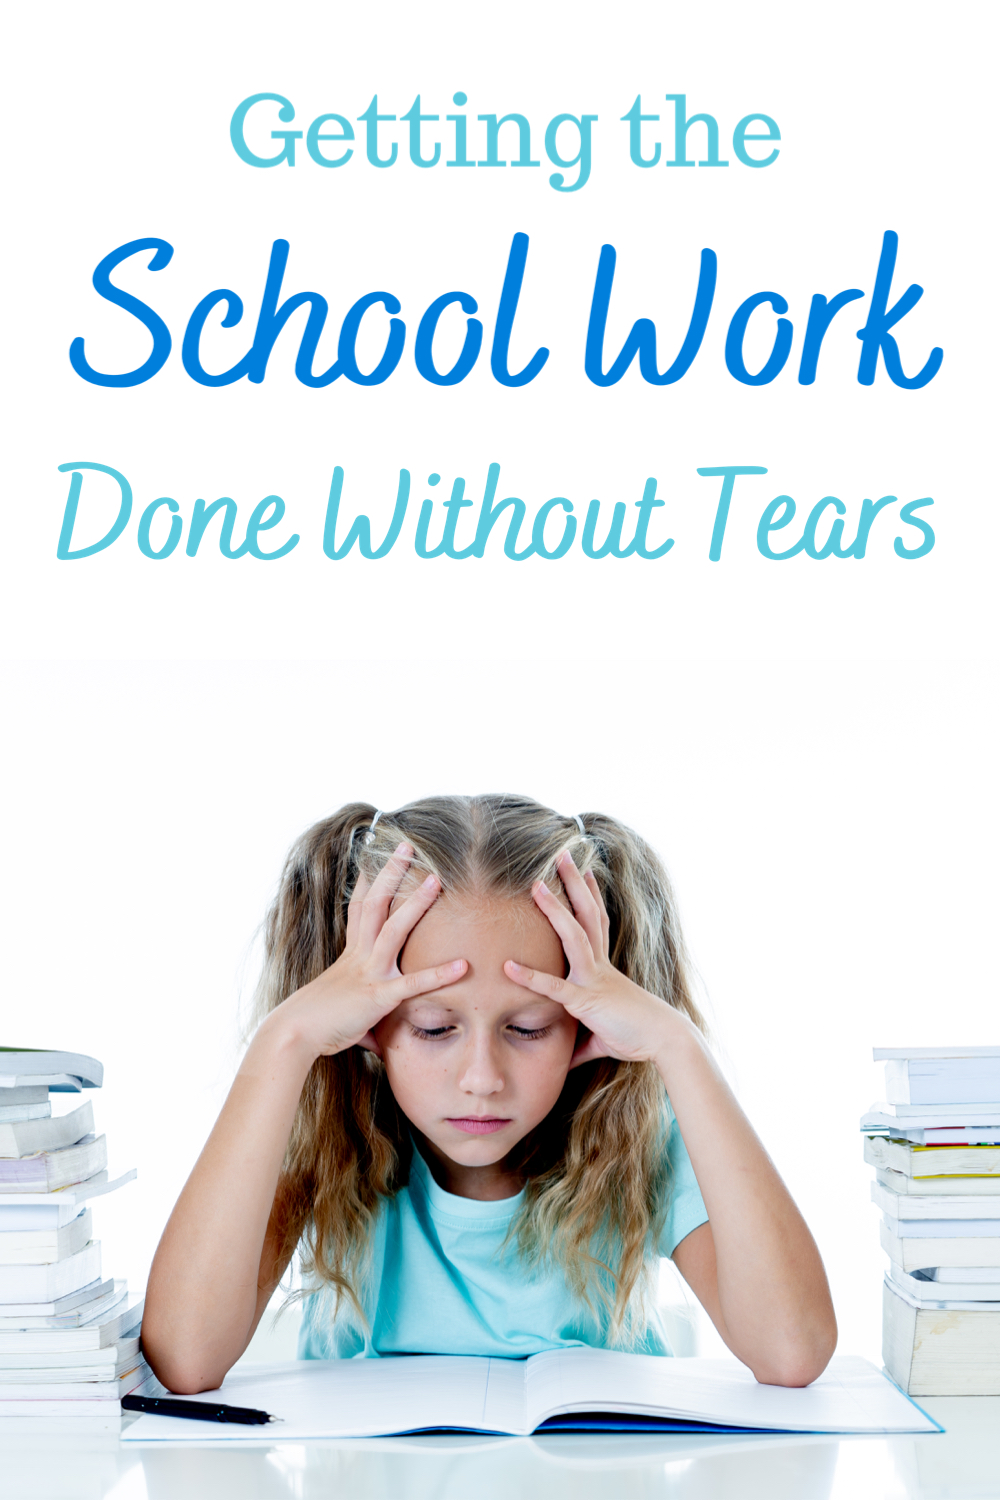 Getting School Work done without tears